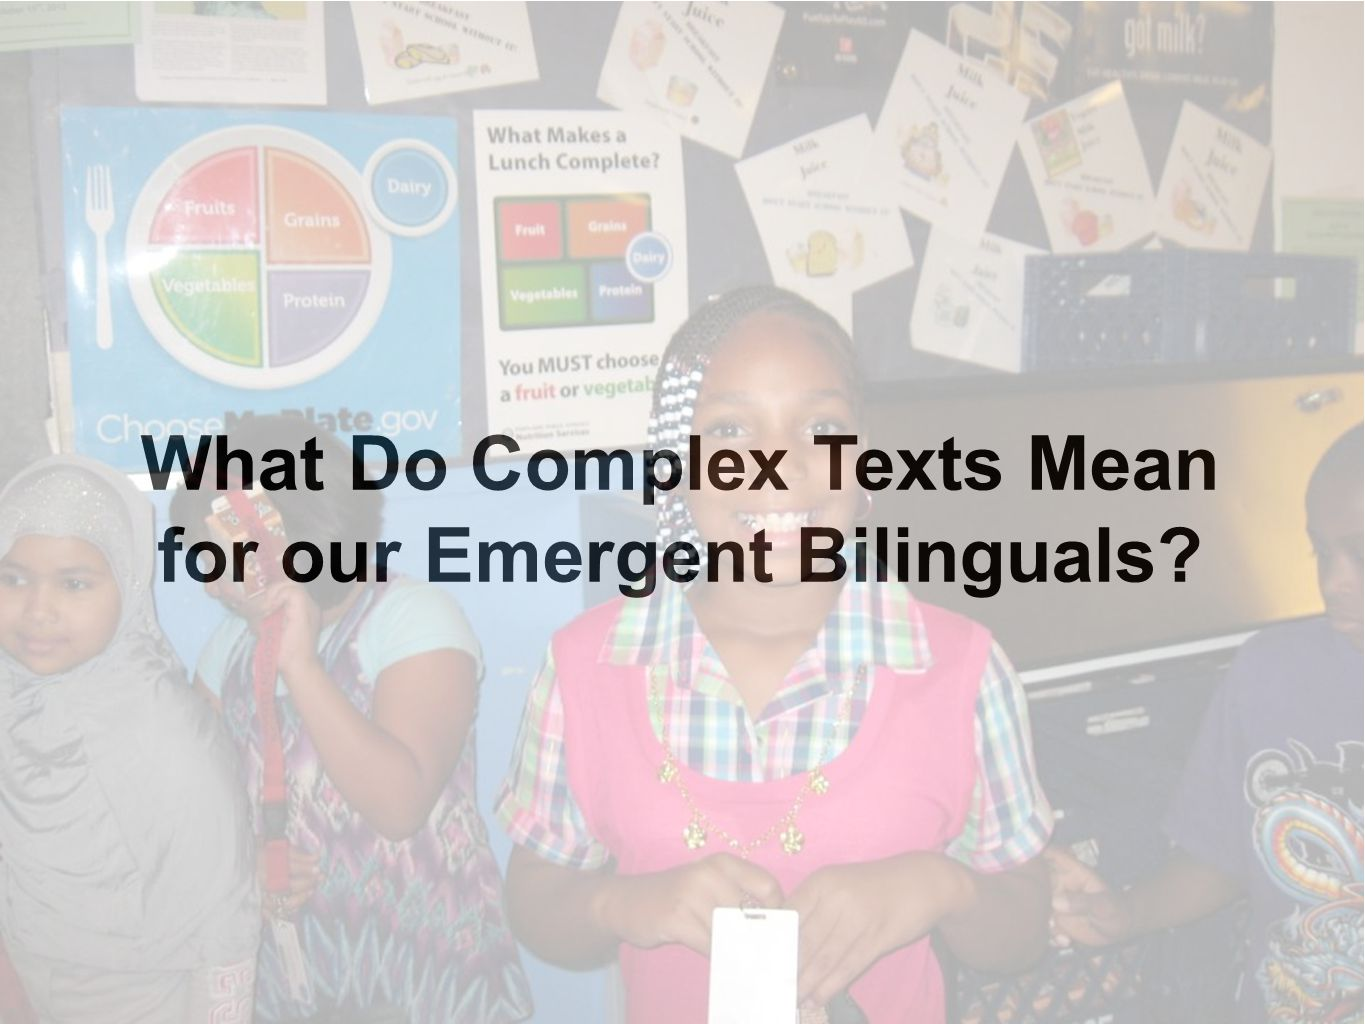 What Do Complex Texts Mean for our Emergent Bilinguals